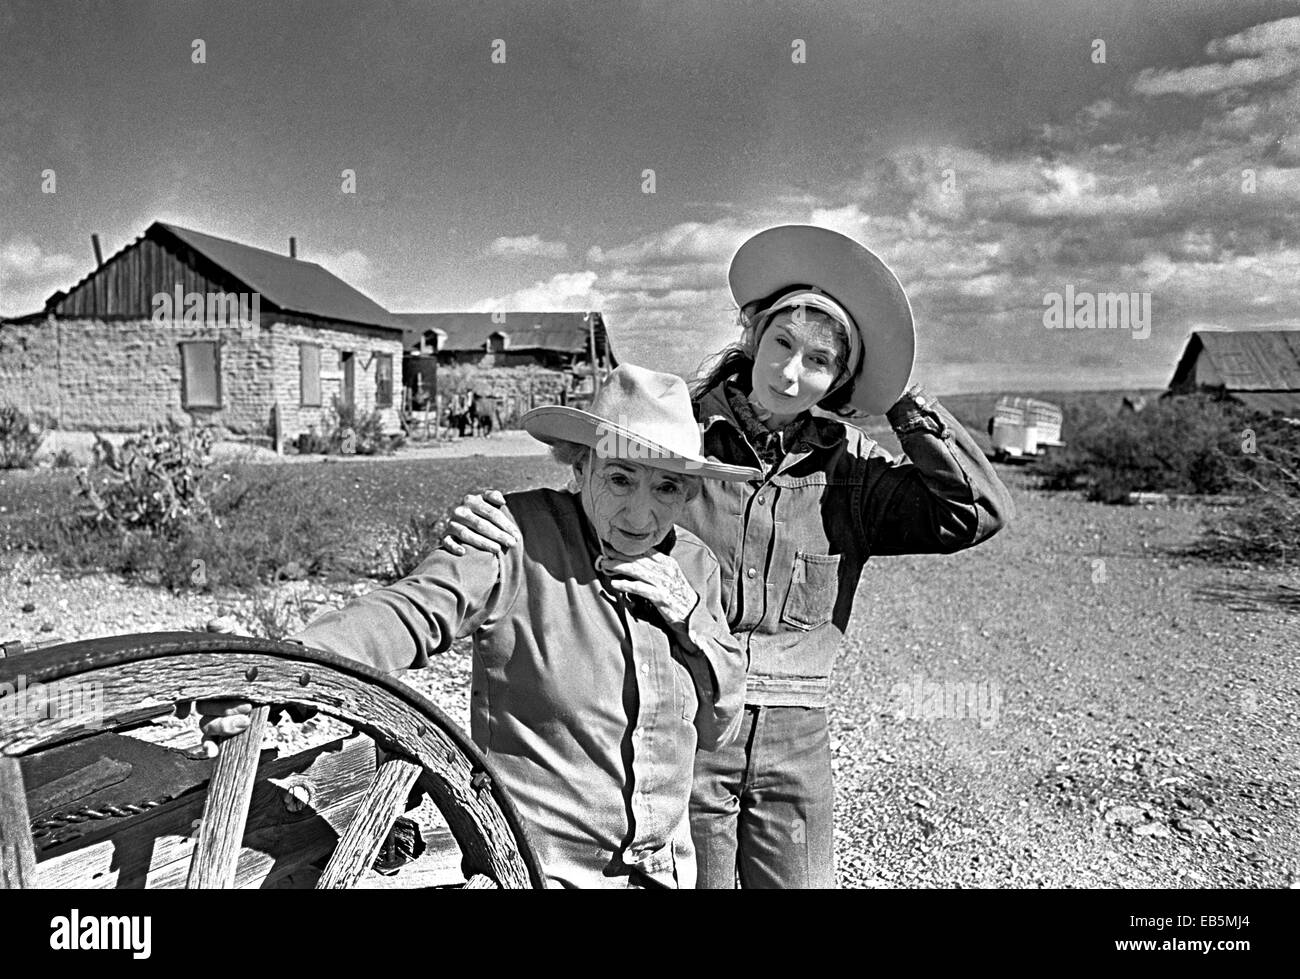 Rita and Janaloo Hill, hermits women who lived in and owned the ghost town Shakespeare, New Mexico, circa 1978 - Stock Image